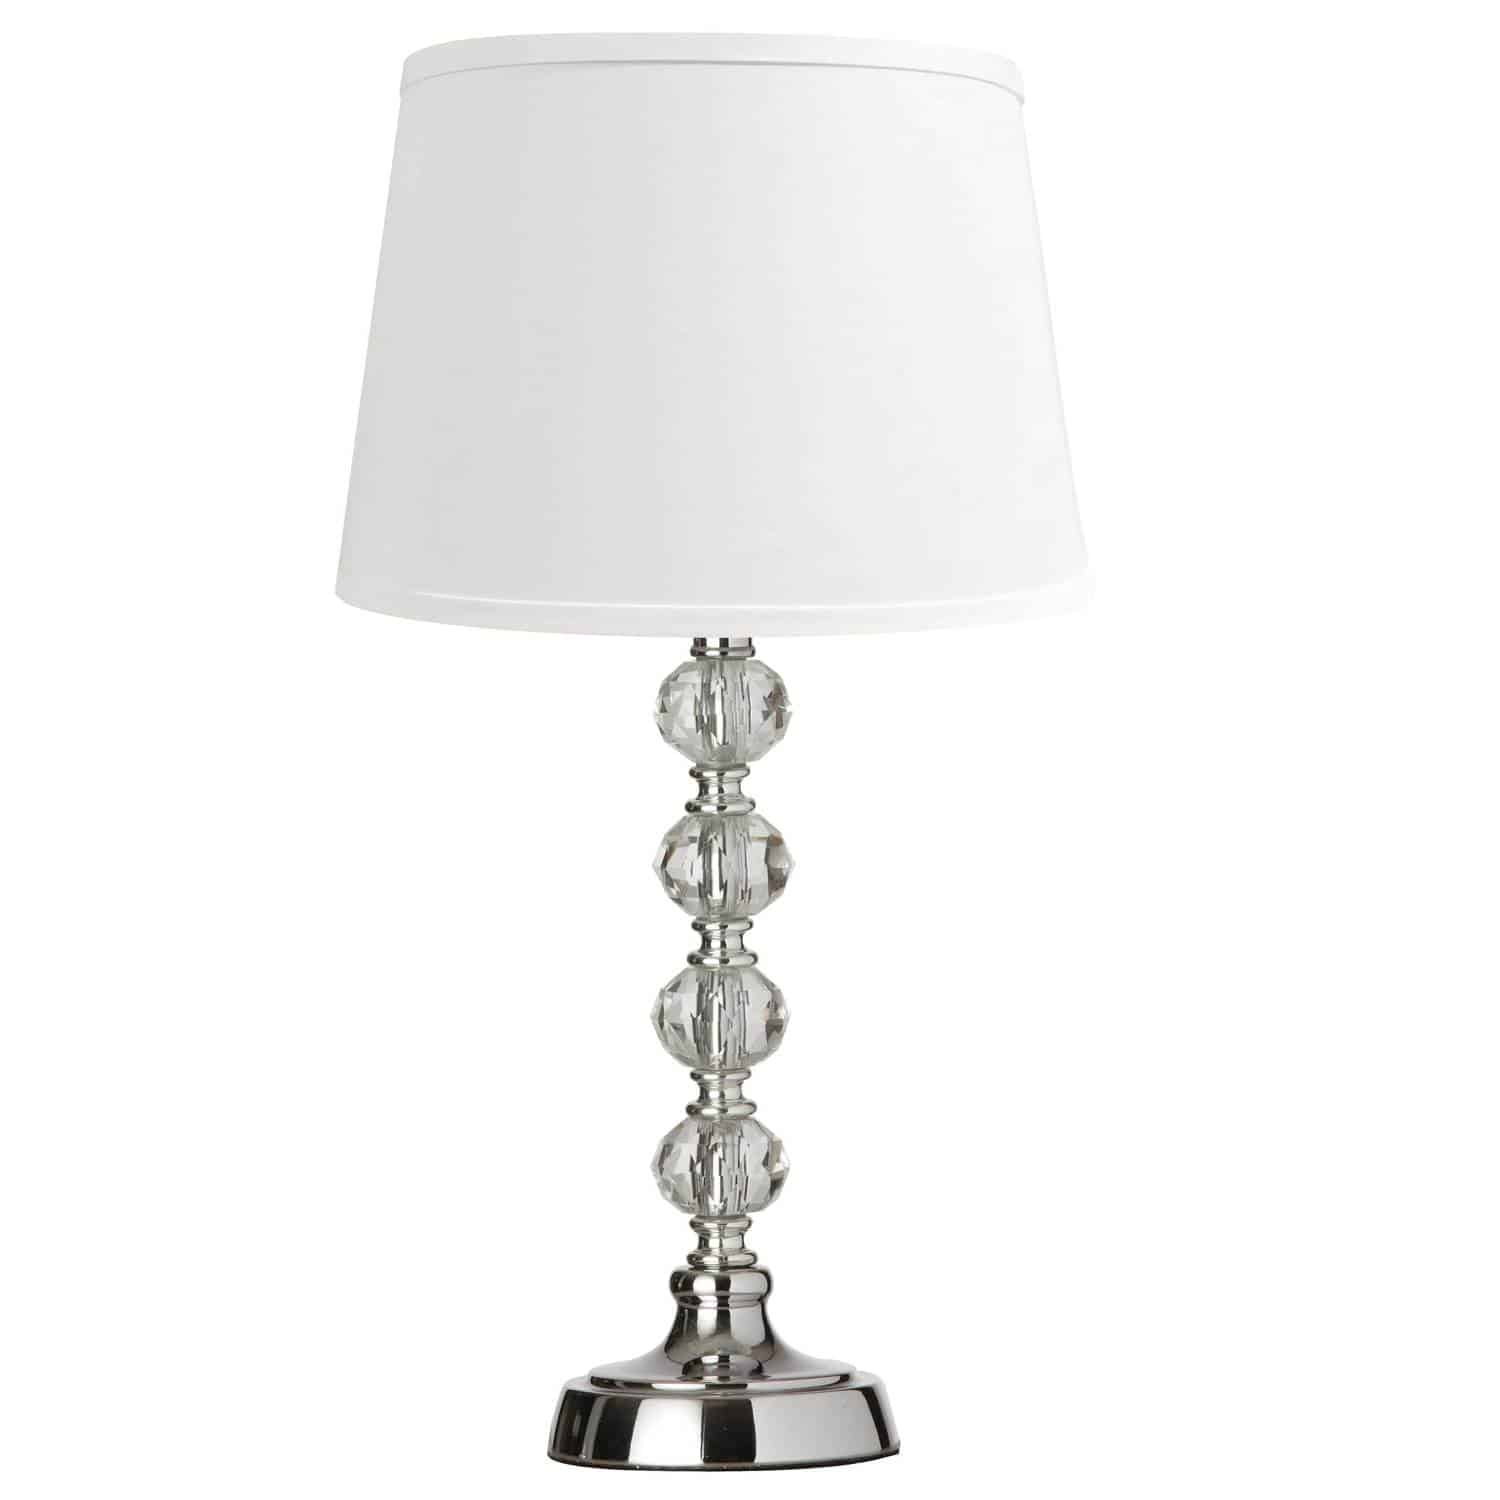 Optical crystal lamps combine a stylish geometric design with the shimmering sparkle of optical crystals for a look that won't go unnoticed.  Polished chrome stands and frames combine with clean white shades to create a classic look of contemporary elegance. Optical crystals are incorporated into the design to add a note of opulence that enhances the effect with a touch of yesteryear's grandeur.  Optical crystal lamps are available in tabletop and floor models that can be used throughout the home to create a unified effect with options that will blend with both traditional and modern furnishings.